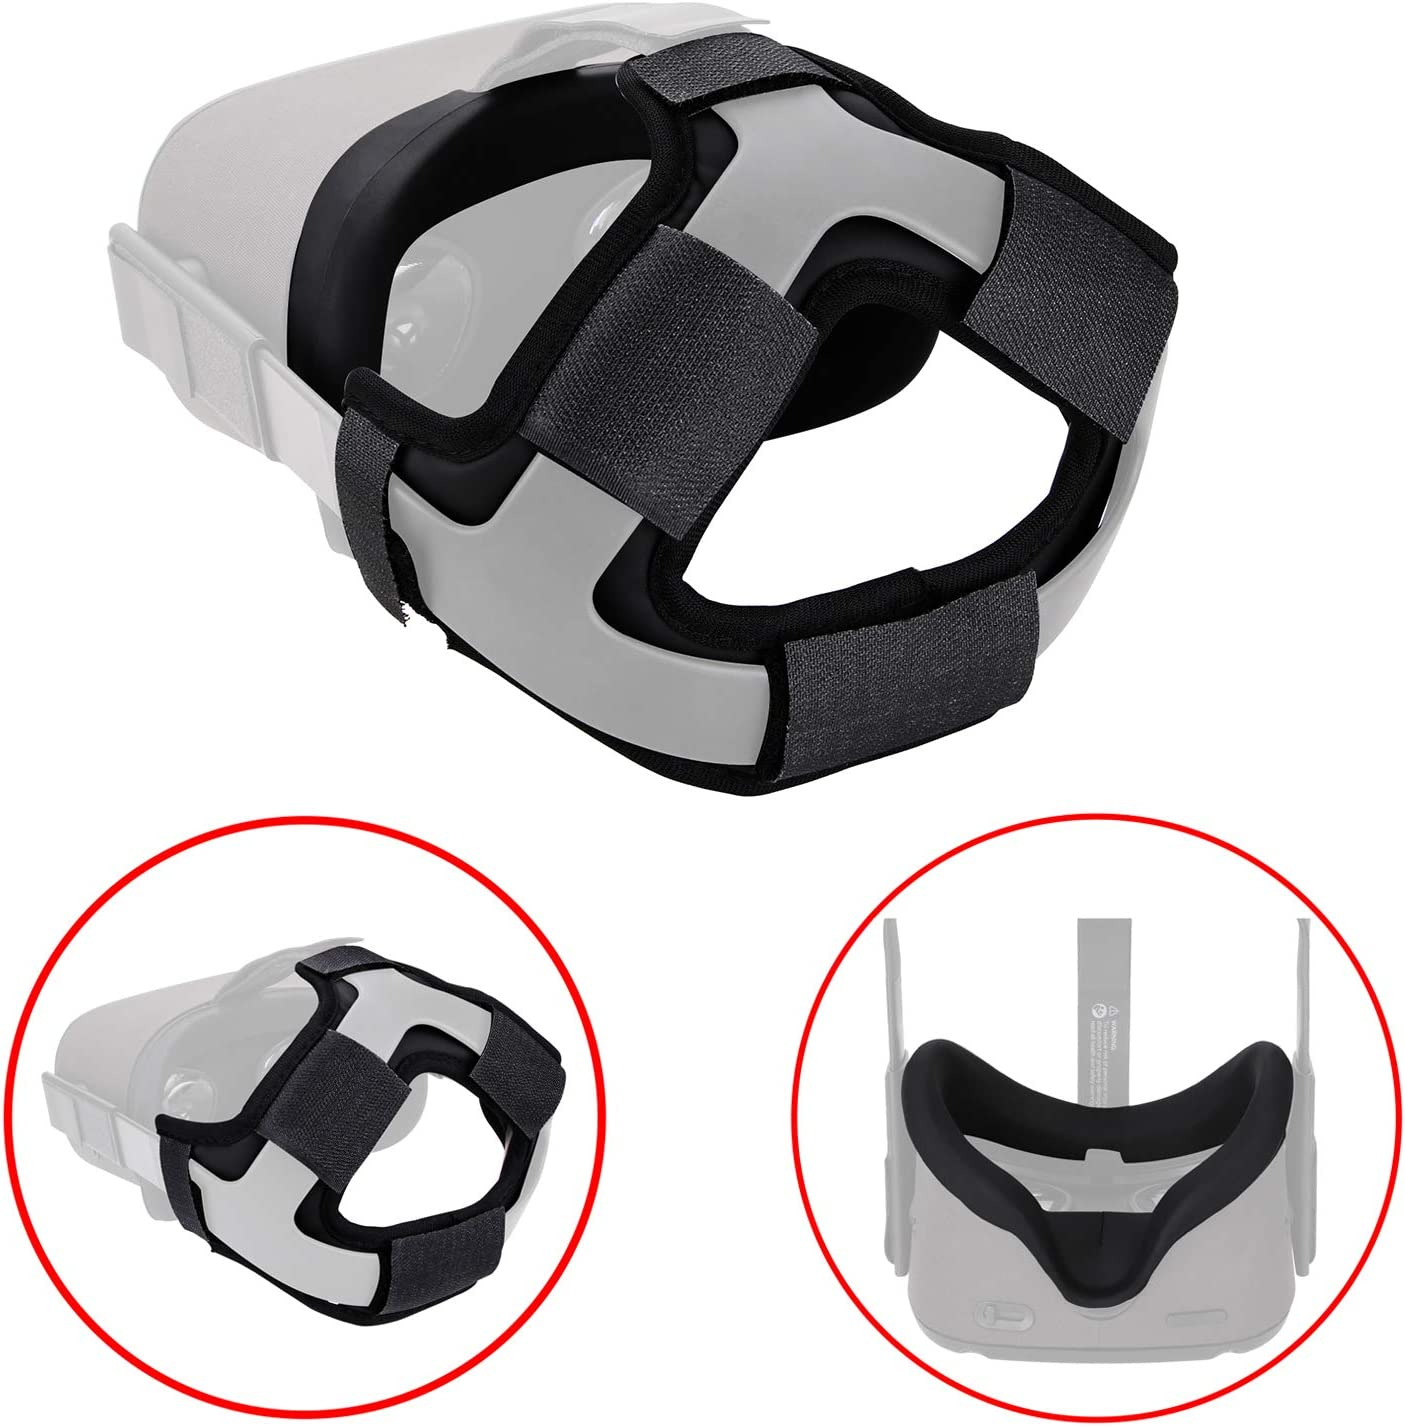 The Combo of VR Face Silicone Cover Mask Pad & Head Strap Pad Cushion Compatible for Oculus Quest Sweatproof Light Blocking (Washable) for Virtual Reality Headset (Black)